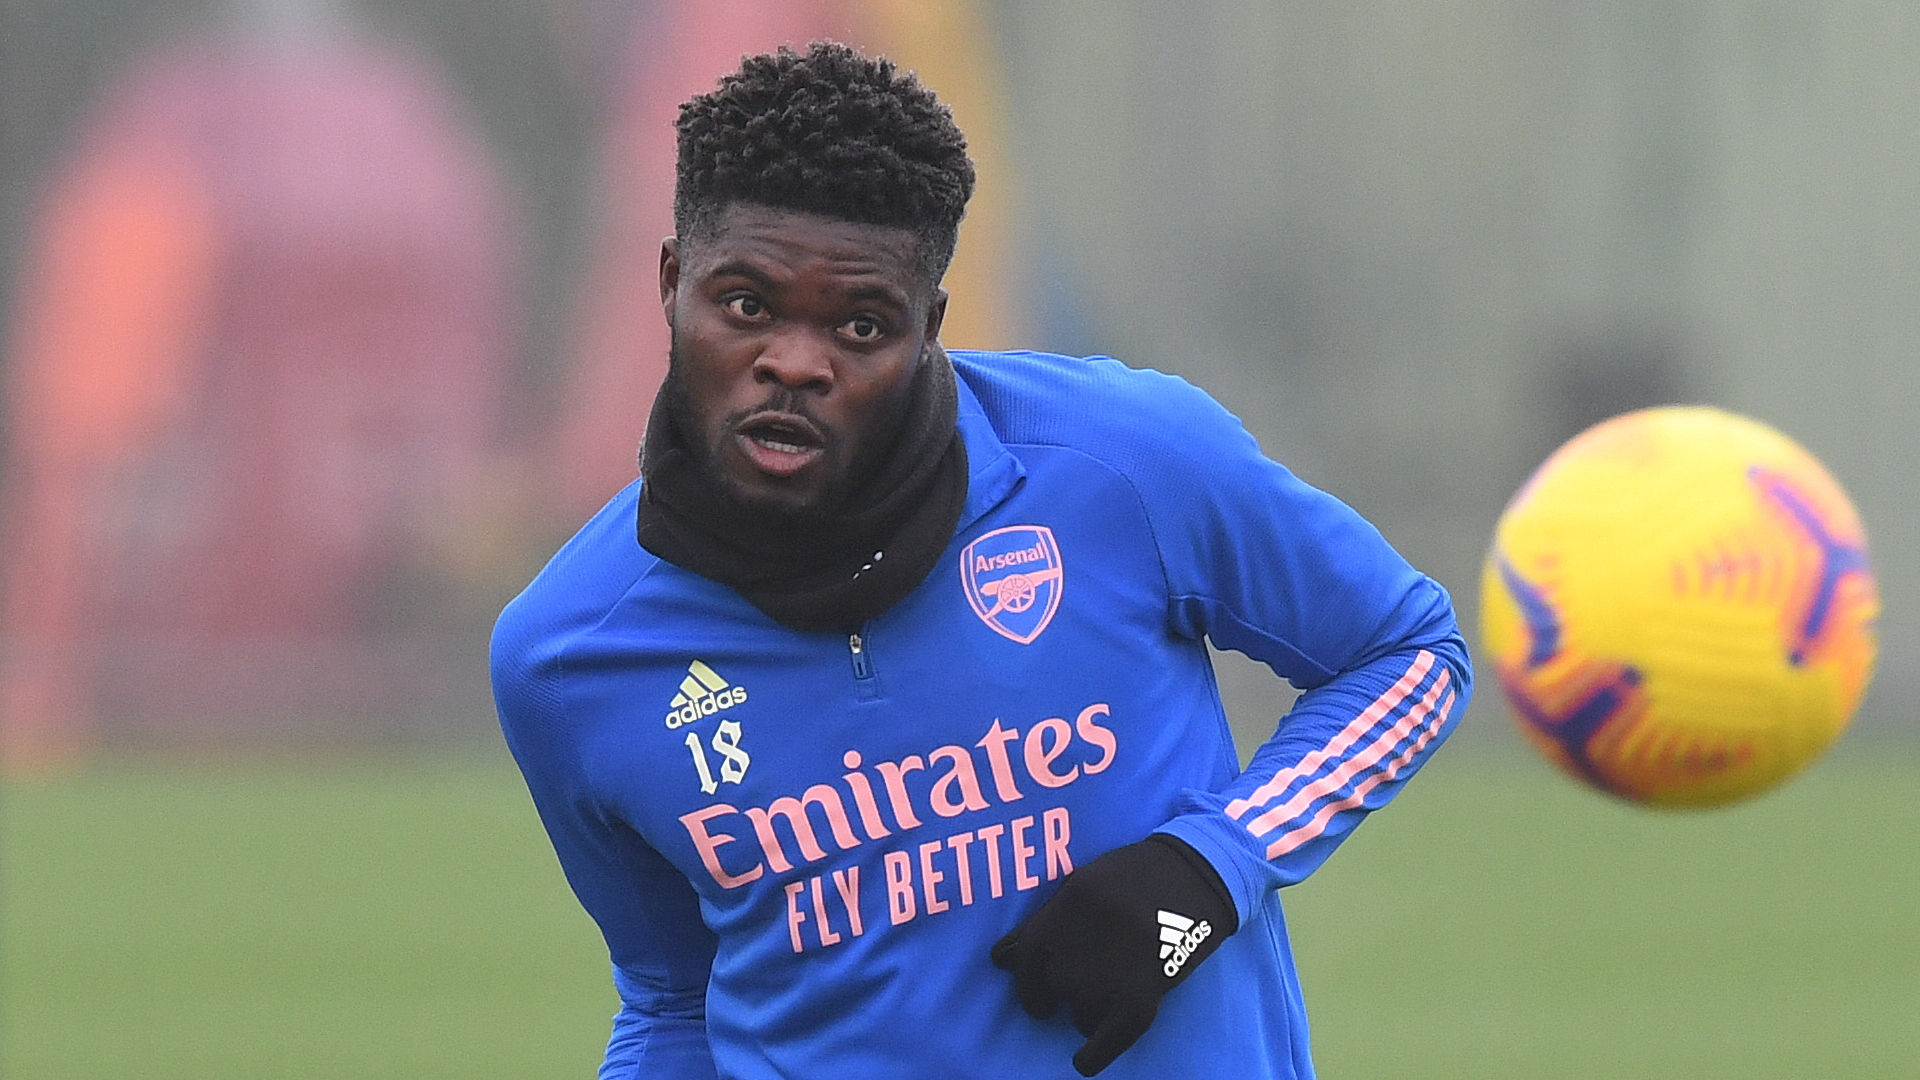 Partey improves team-mates – Arteta excited to have Arsenal midfielder back from injury